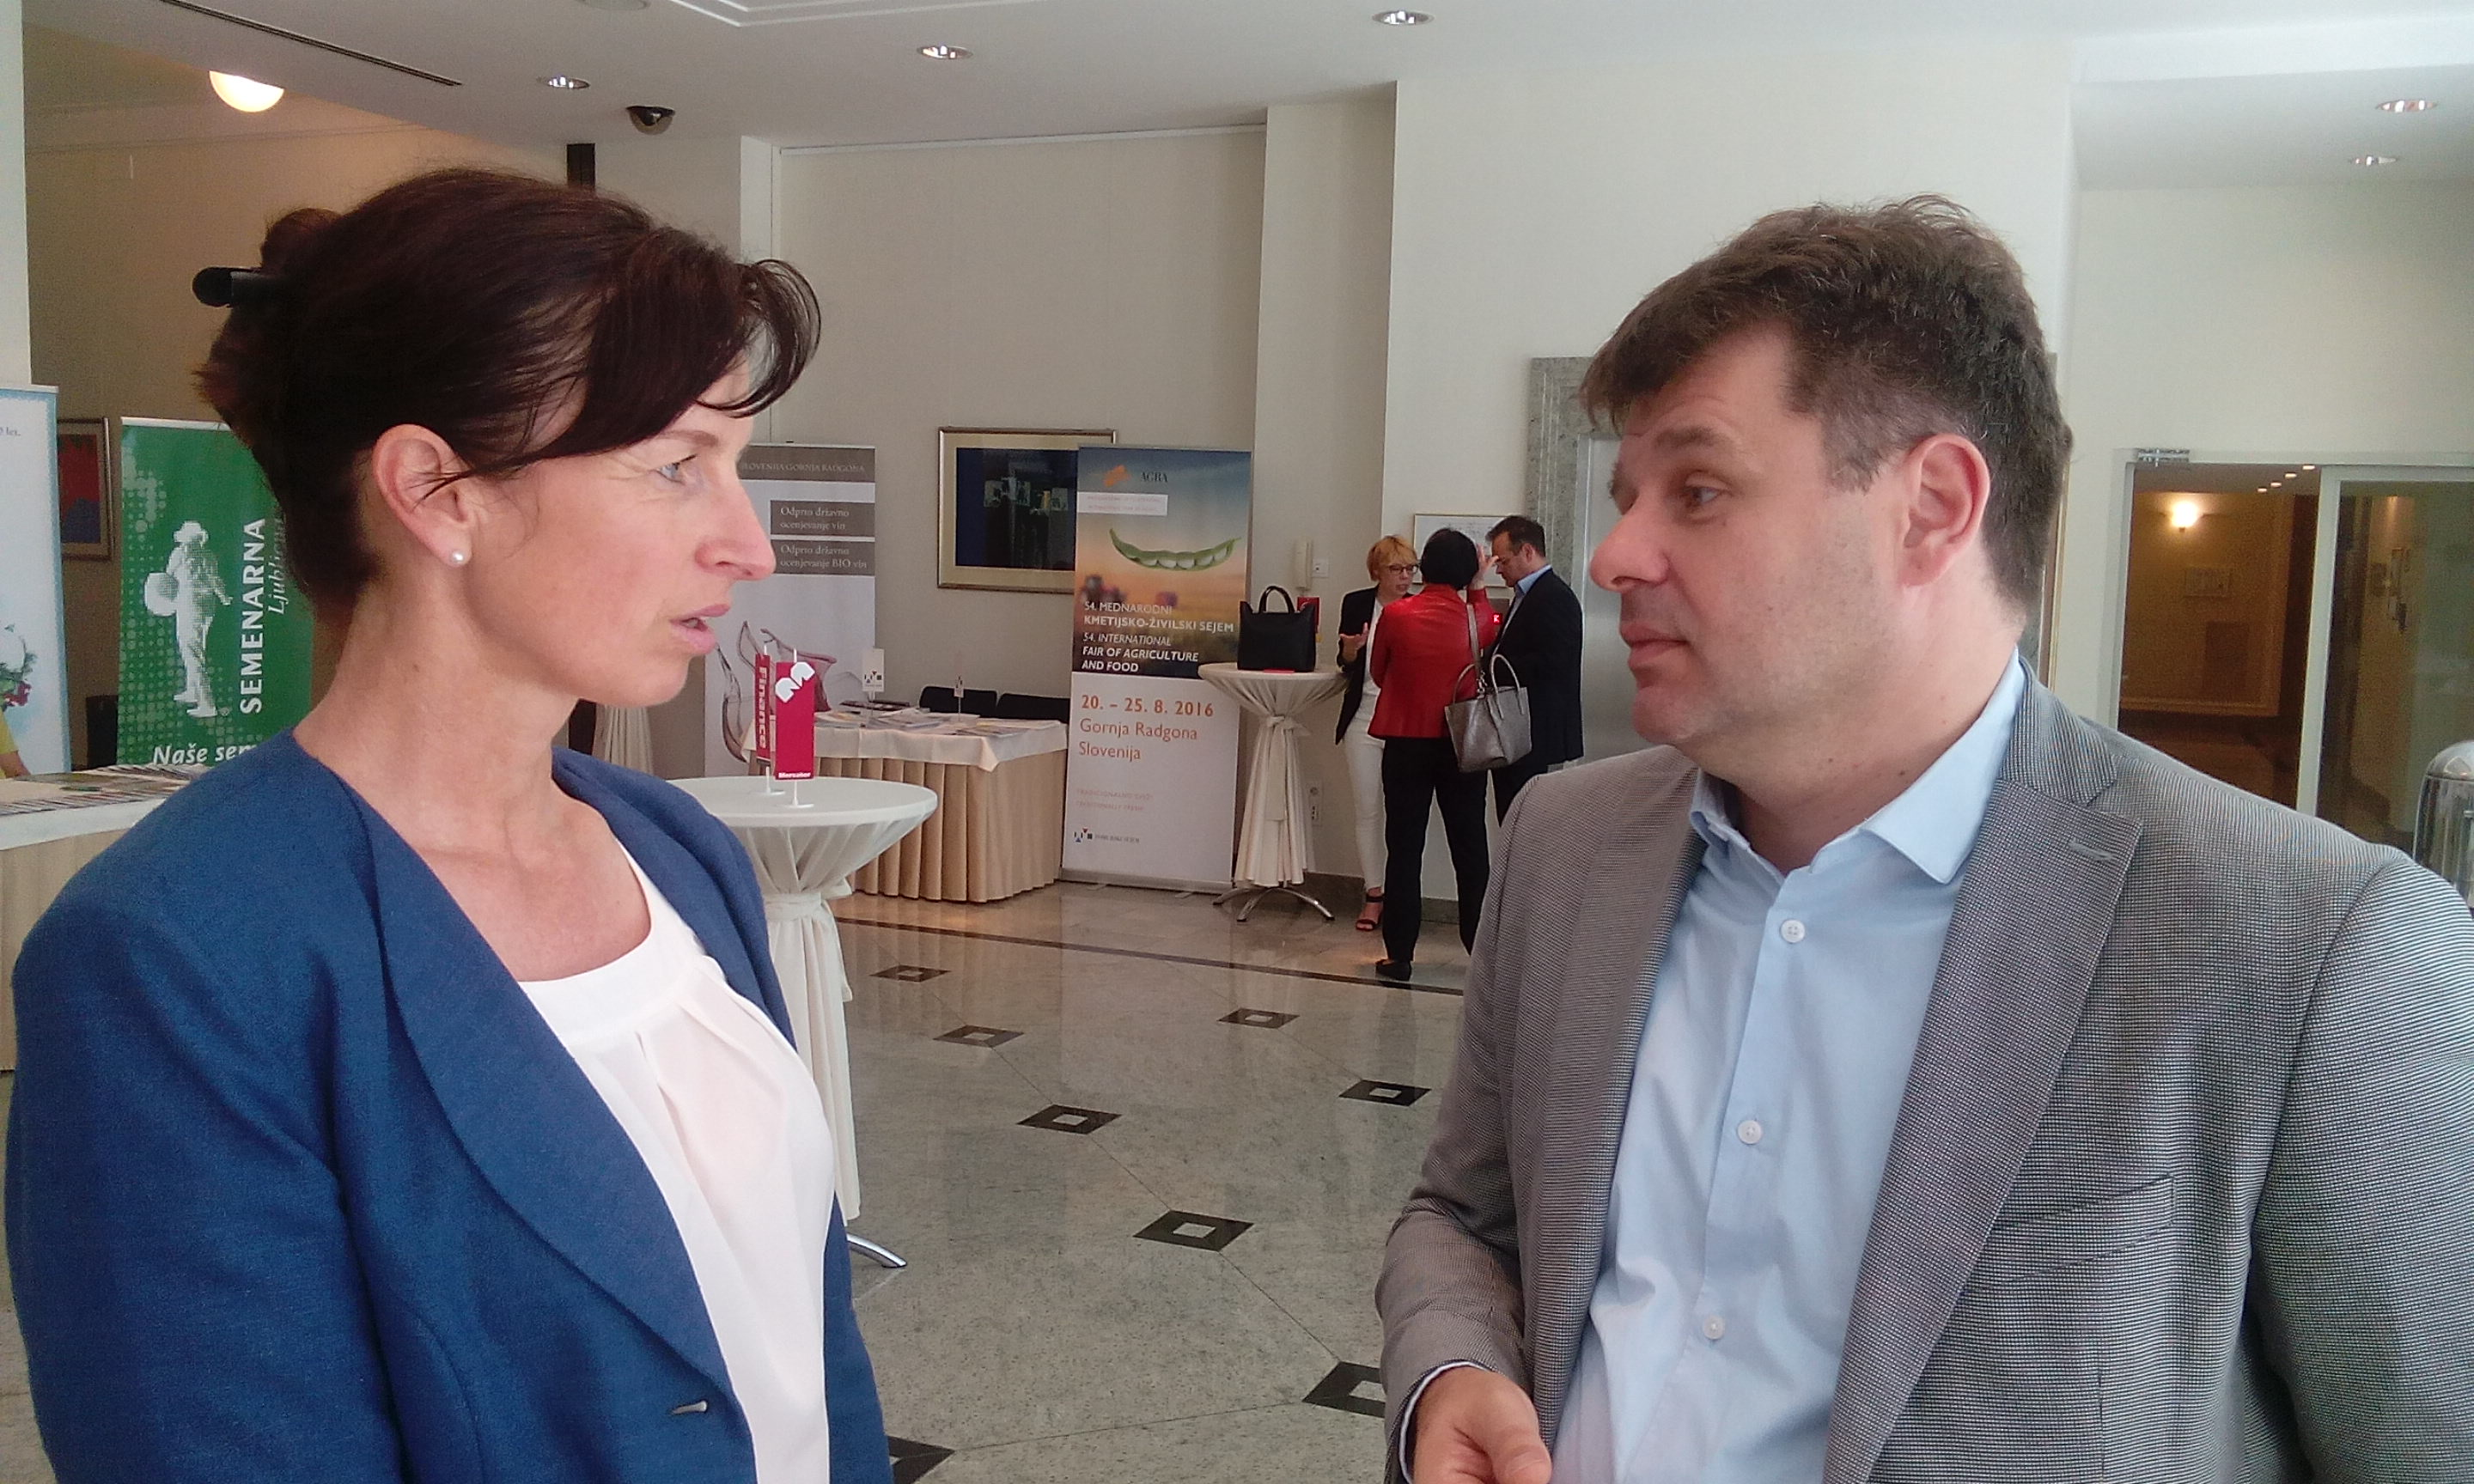 We Visited the Agrobiznis Conference in Ljubljana